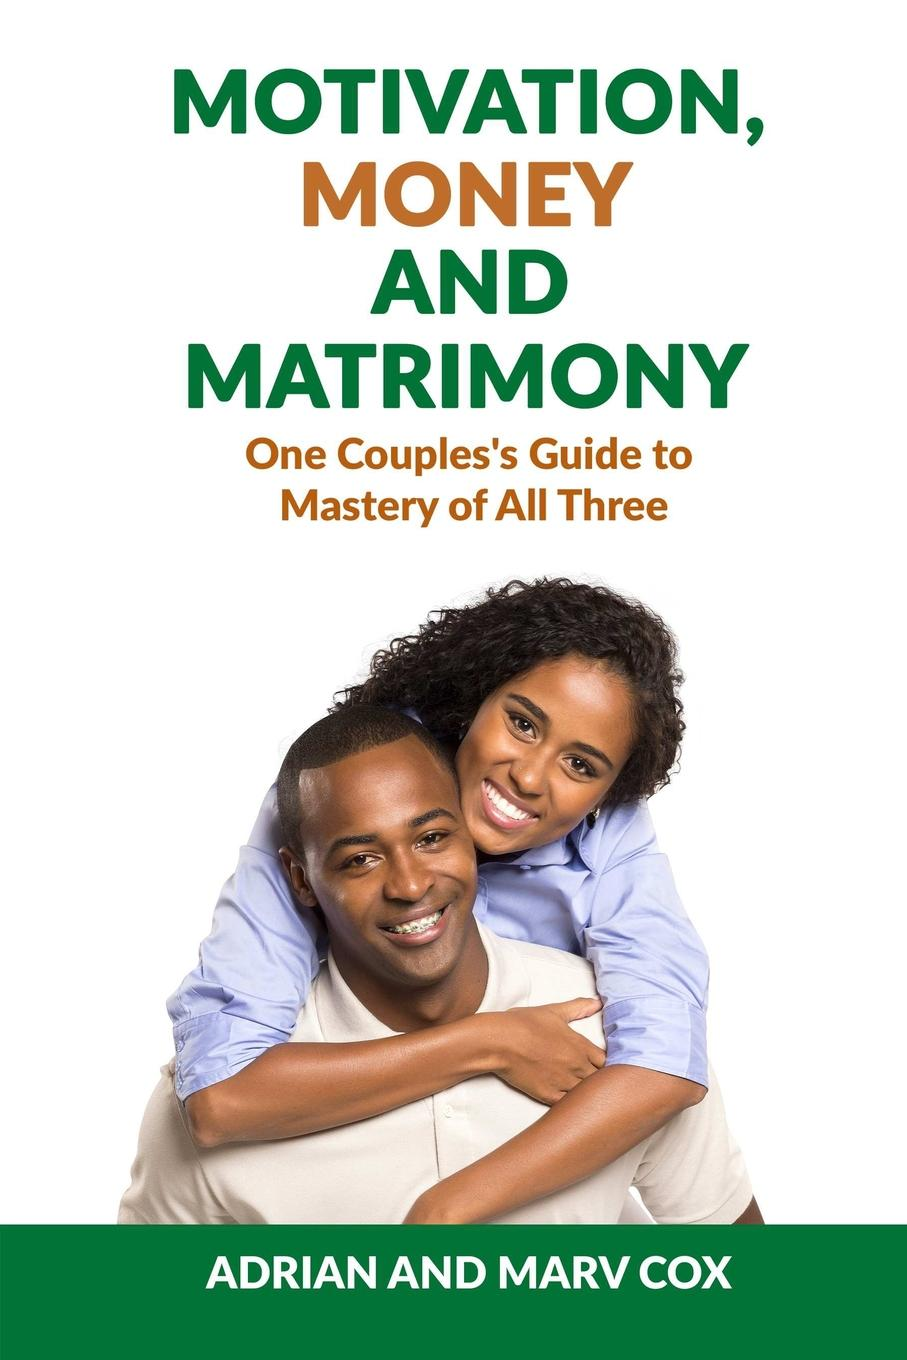 Adrian Cox, Marv Cox Motivation, Money and Matrimony - A Couple.s Guide to Mastery of All Three reductress how to win at feminism the definitive guide to having it all and then some